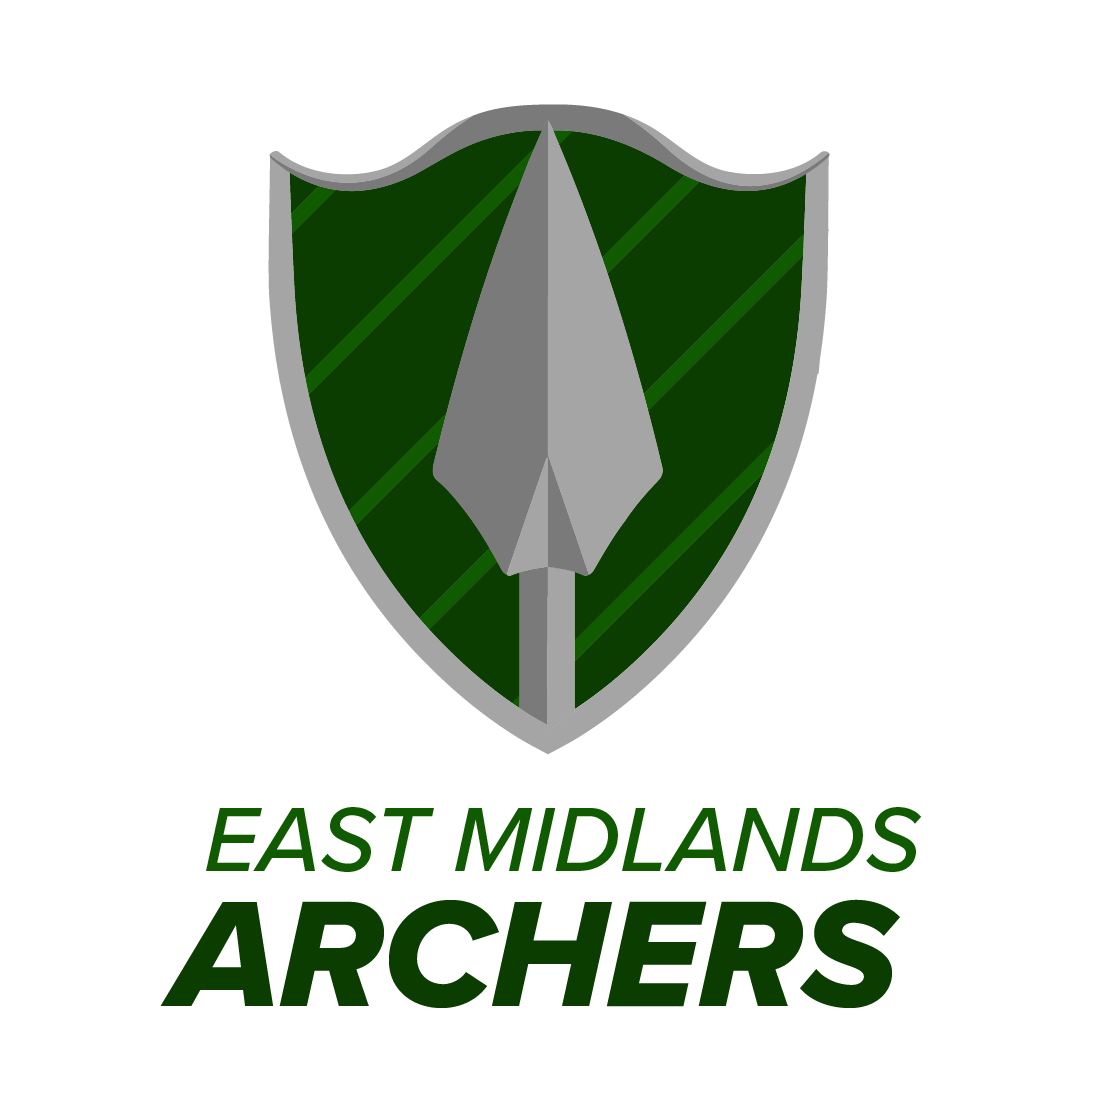 East Midlands Archers